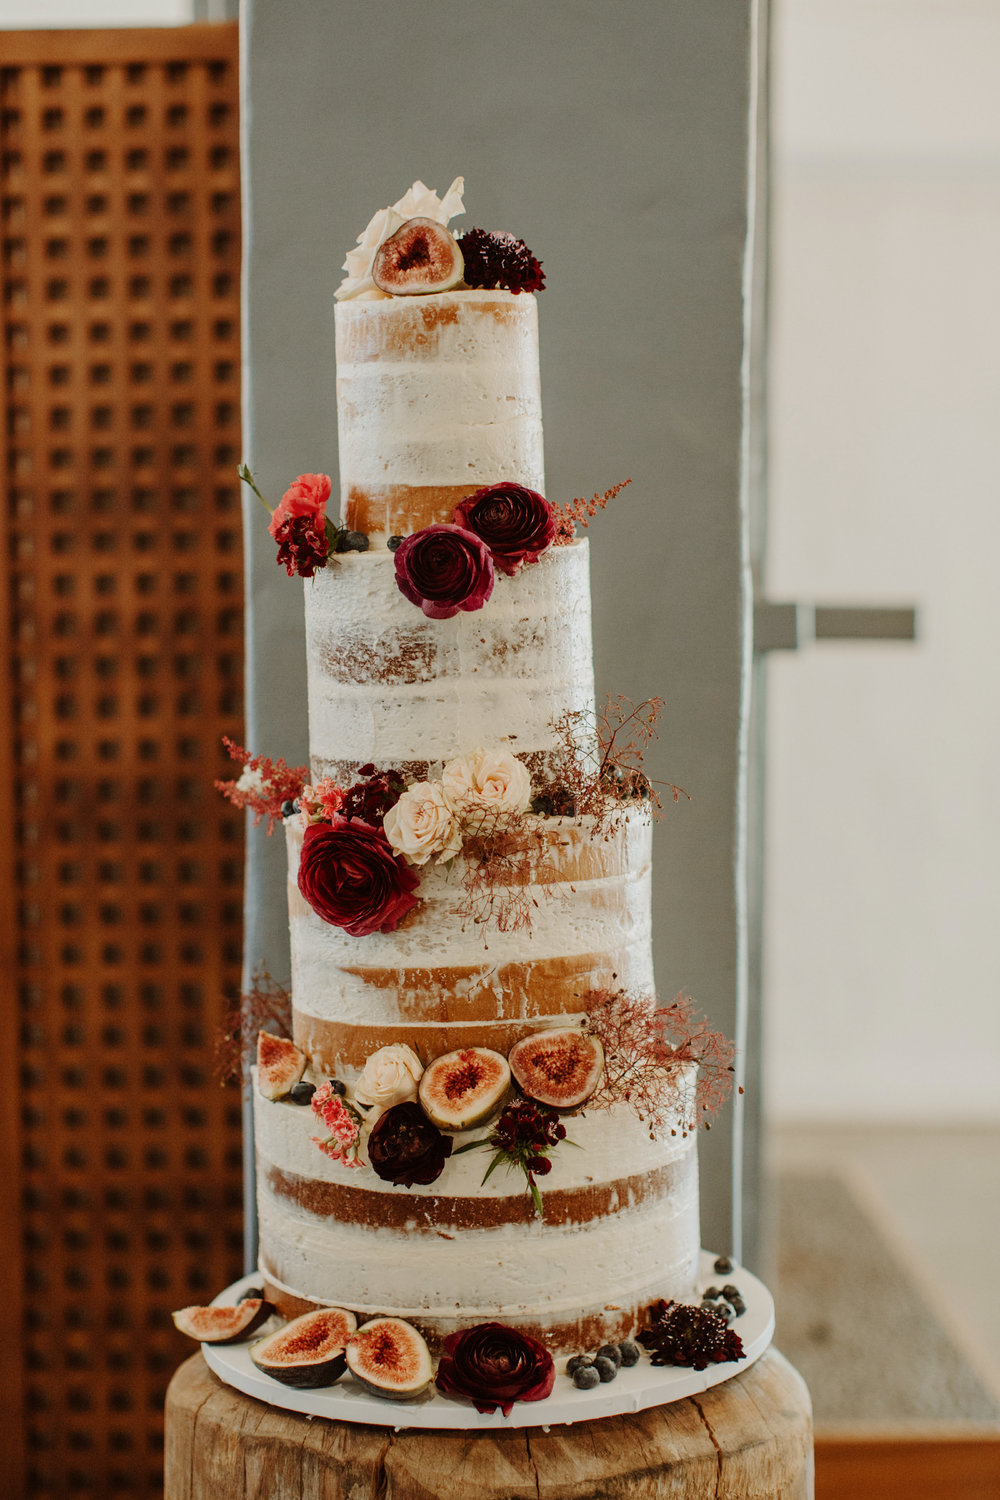 Tall naked wedding cake with figs and fresh flowers